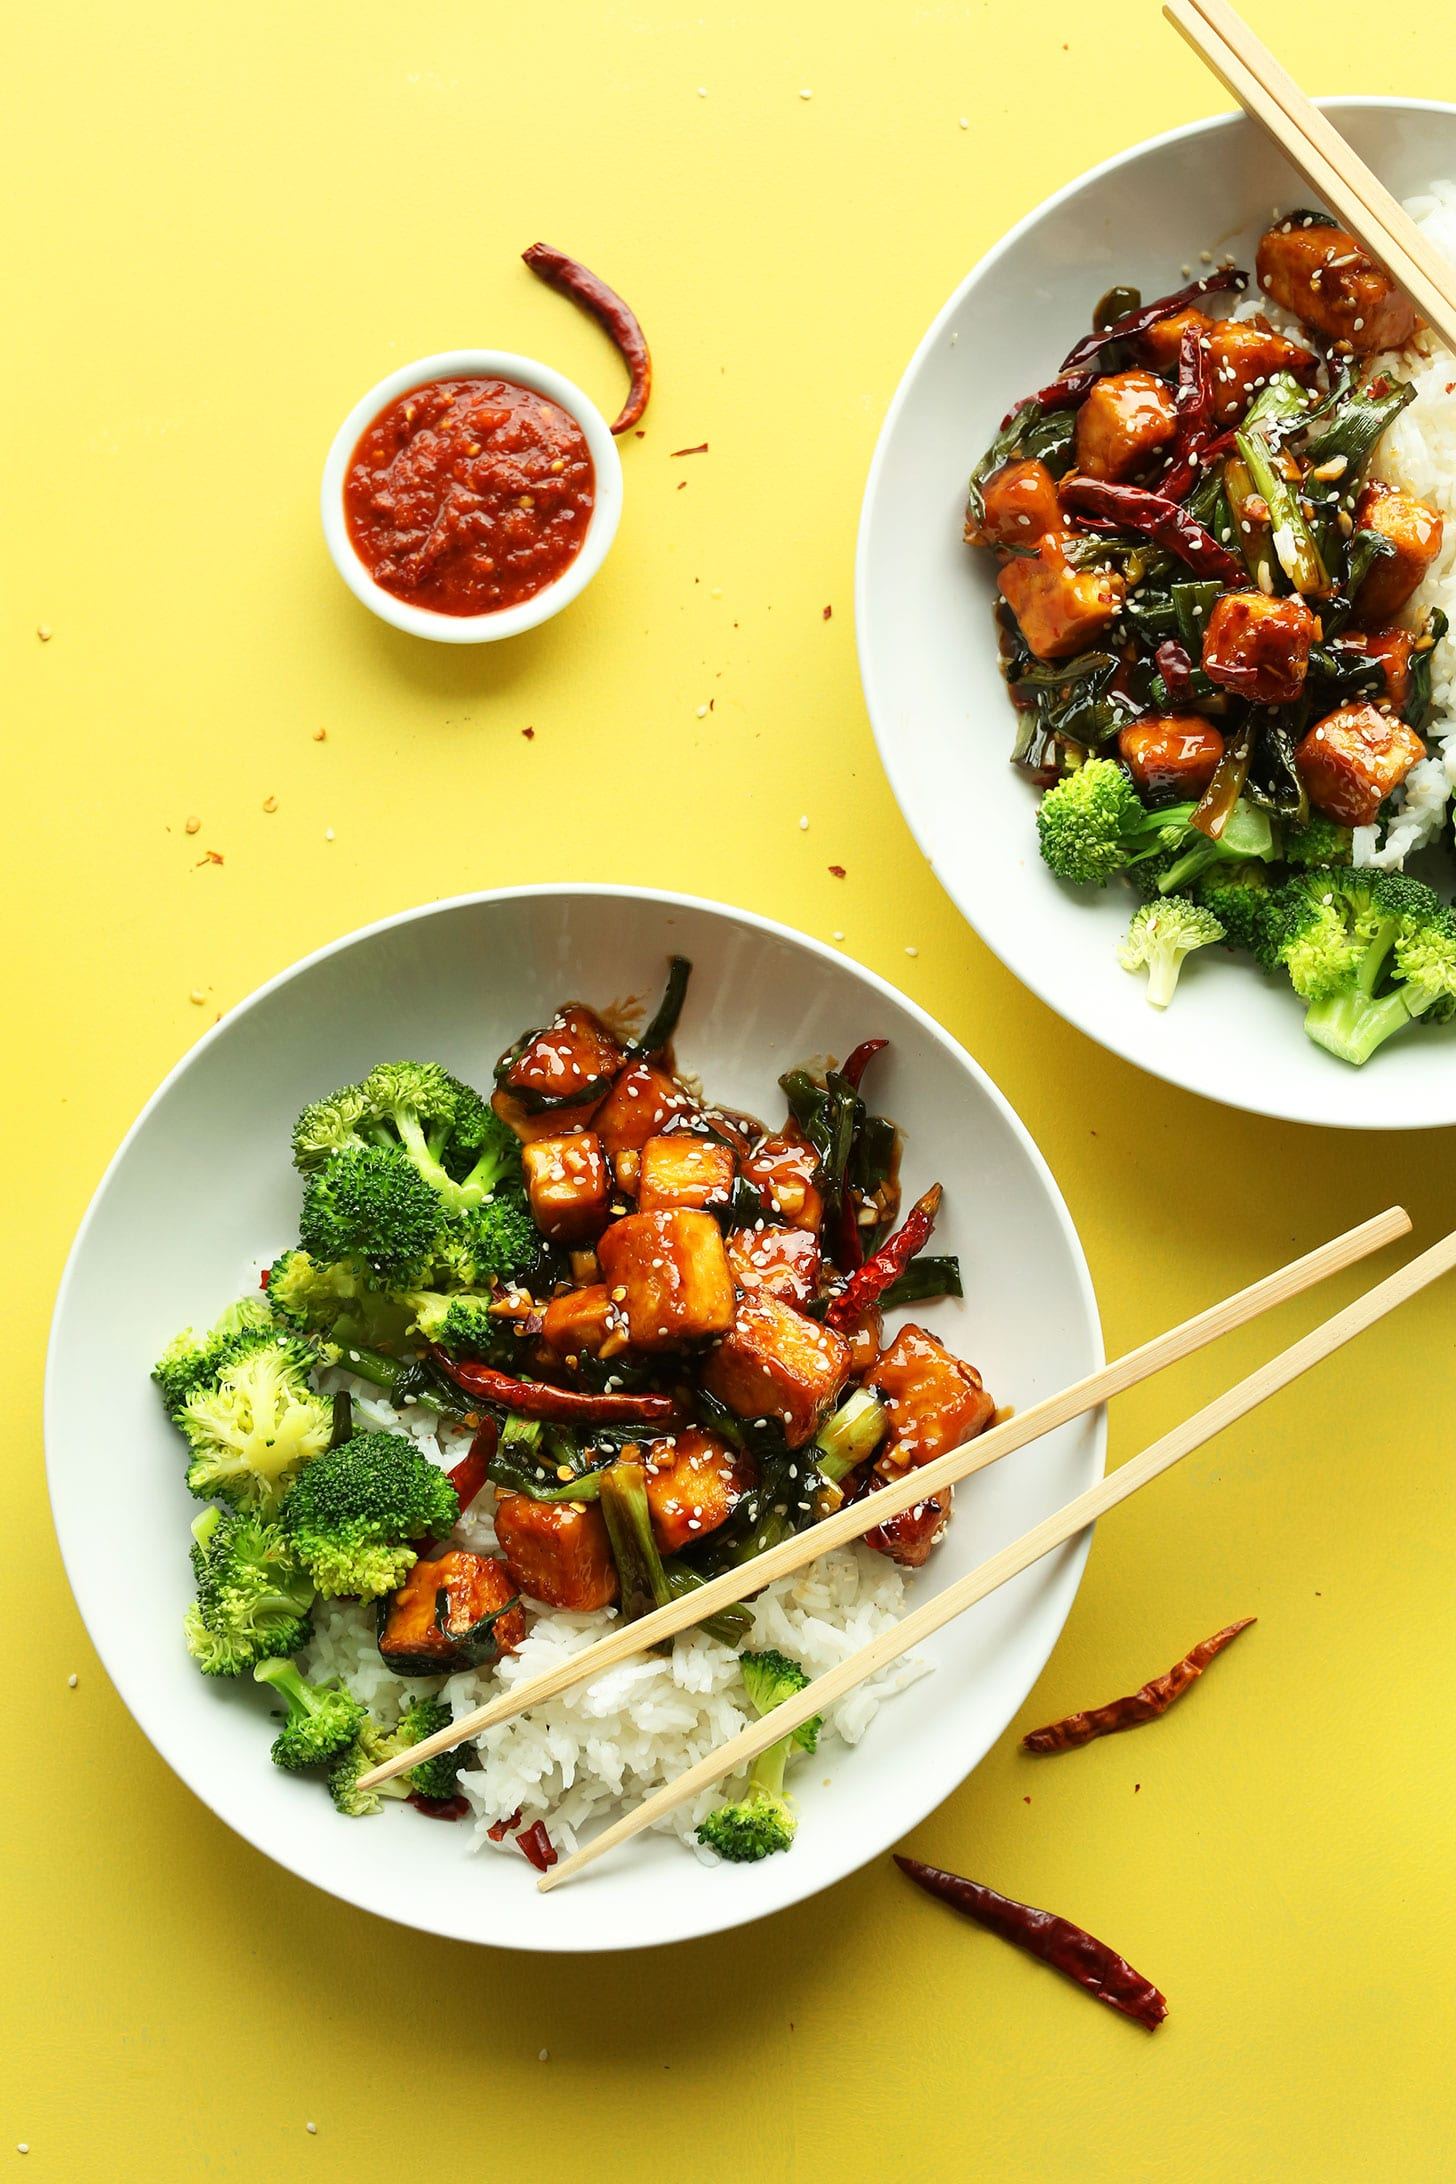 General Tso's Tofu Stir Fry from minimalistbaker.com on foodiecrush.com